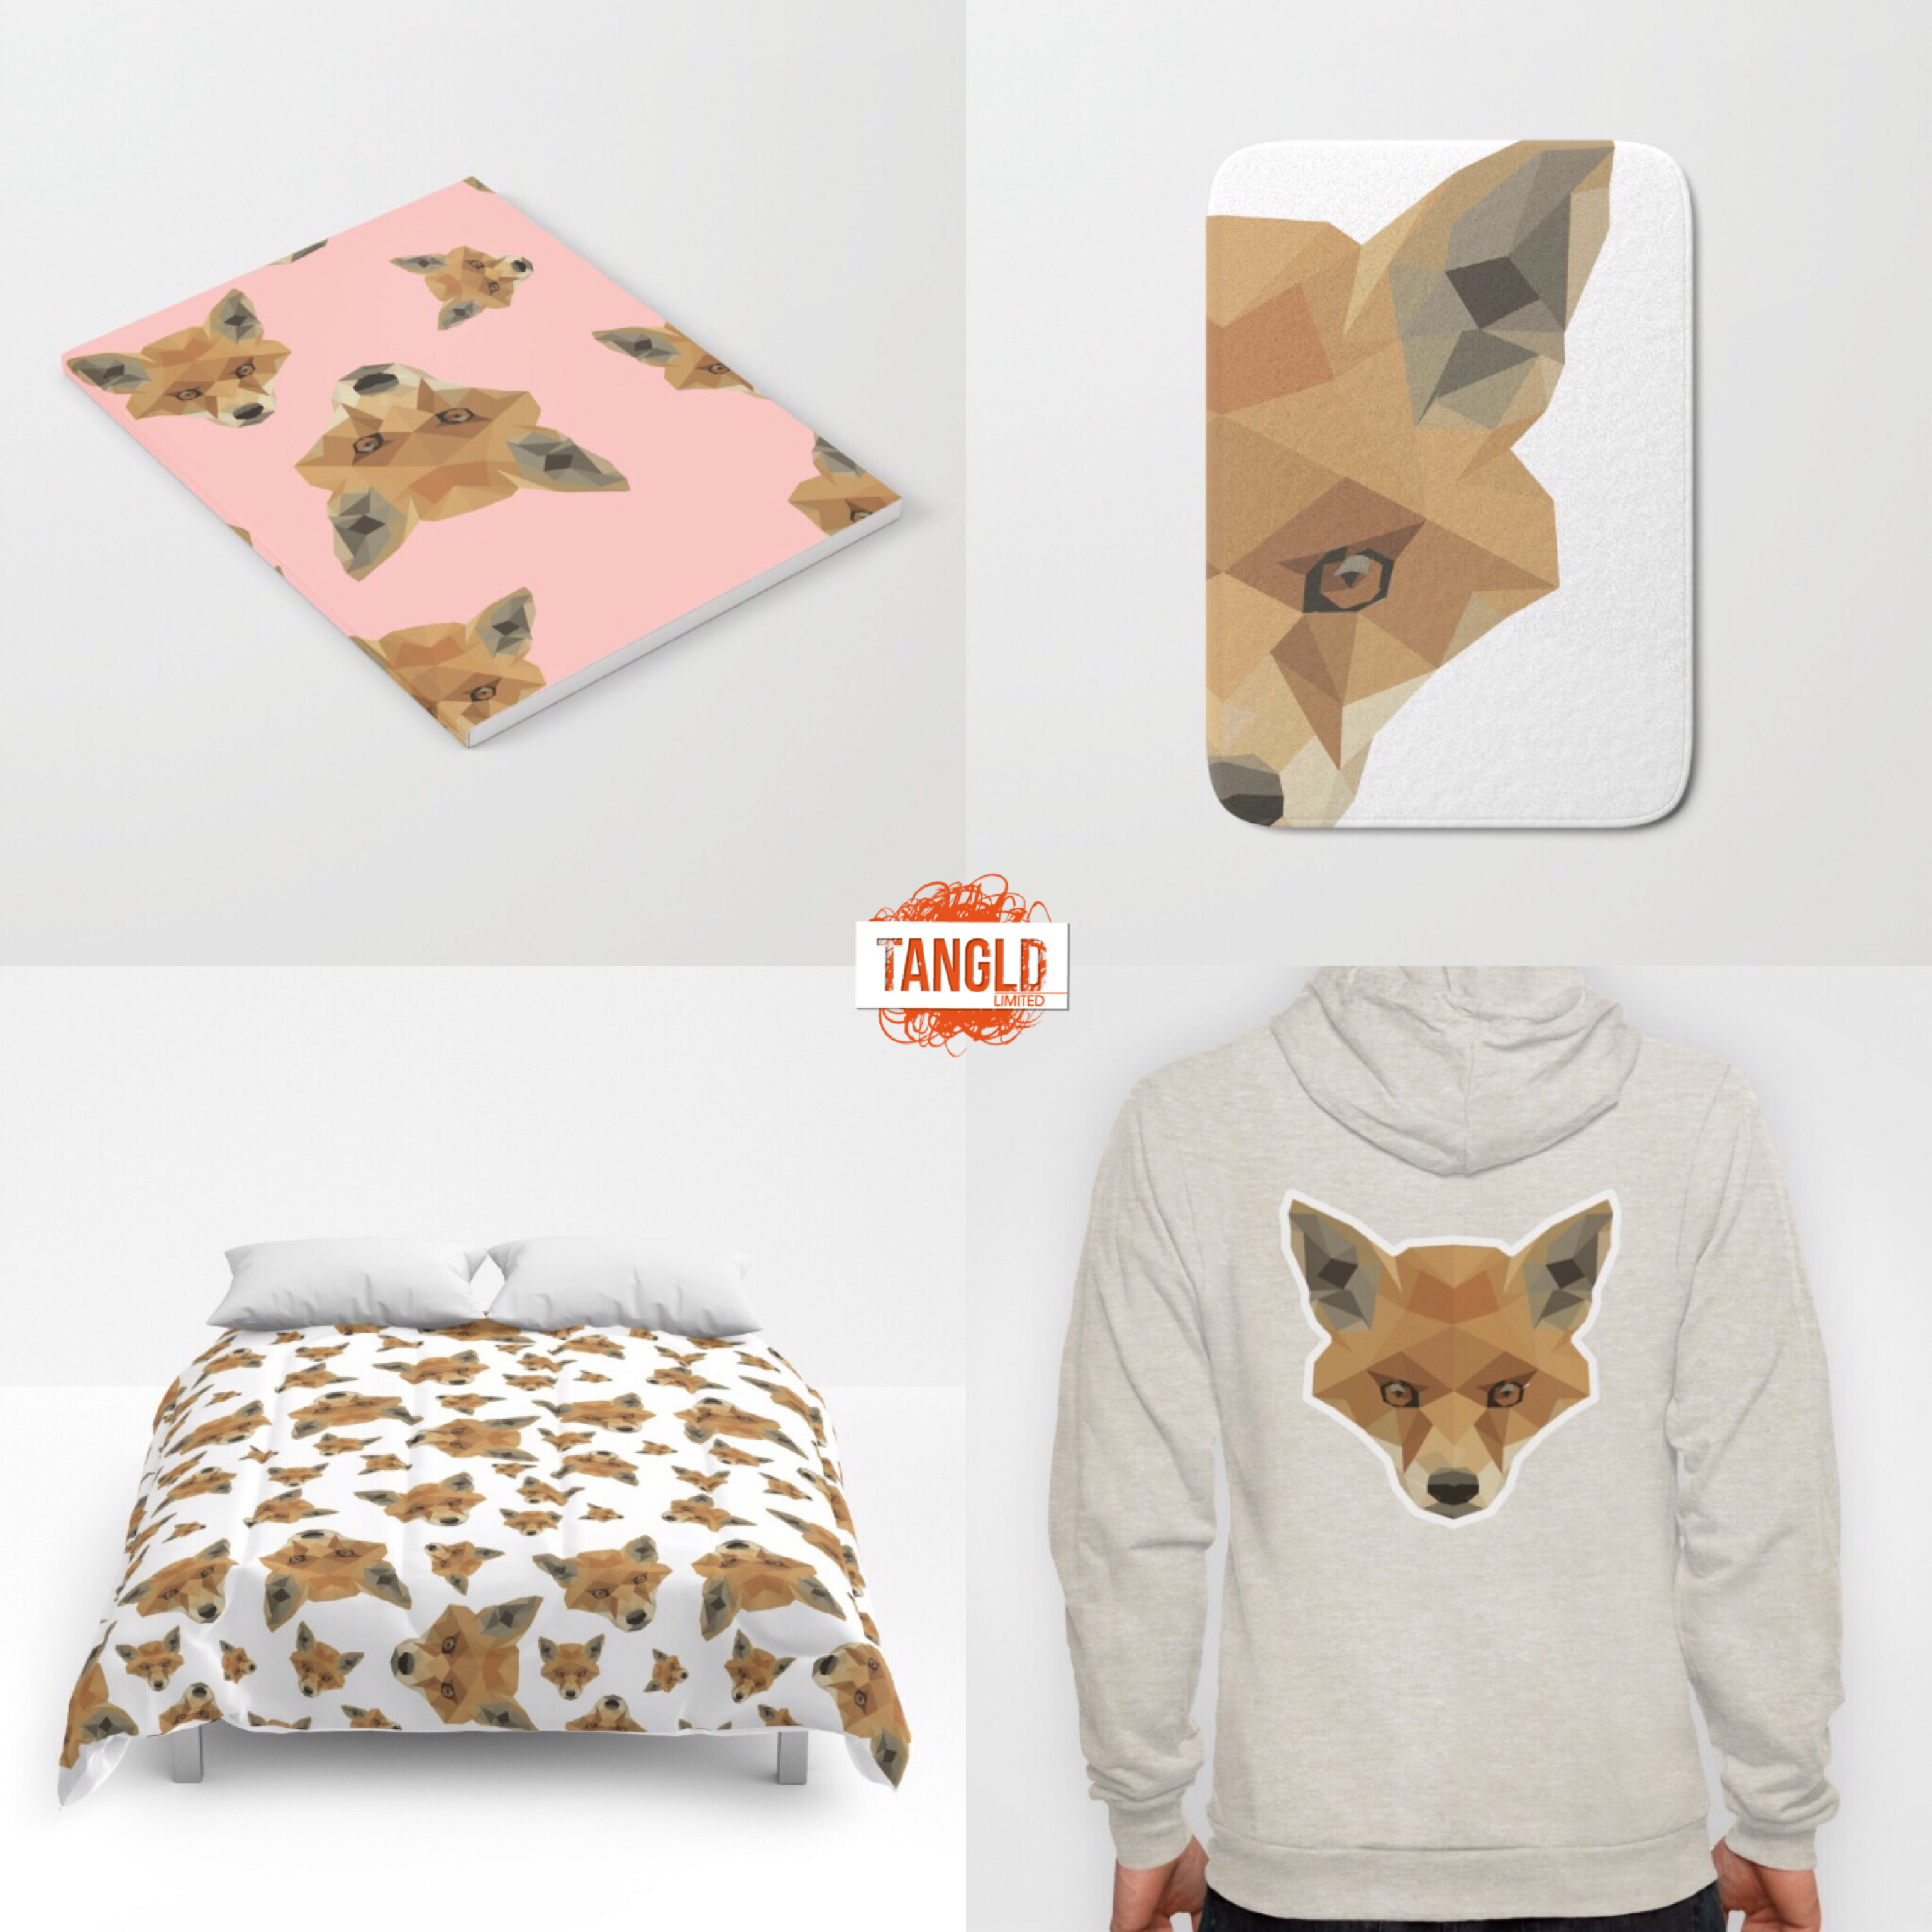 Our fox pattern and motif looks great on products.